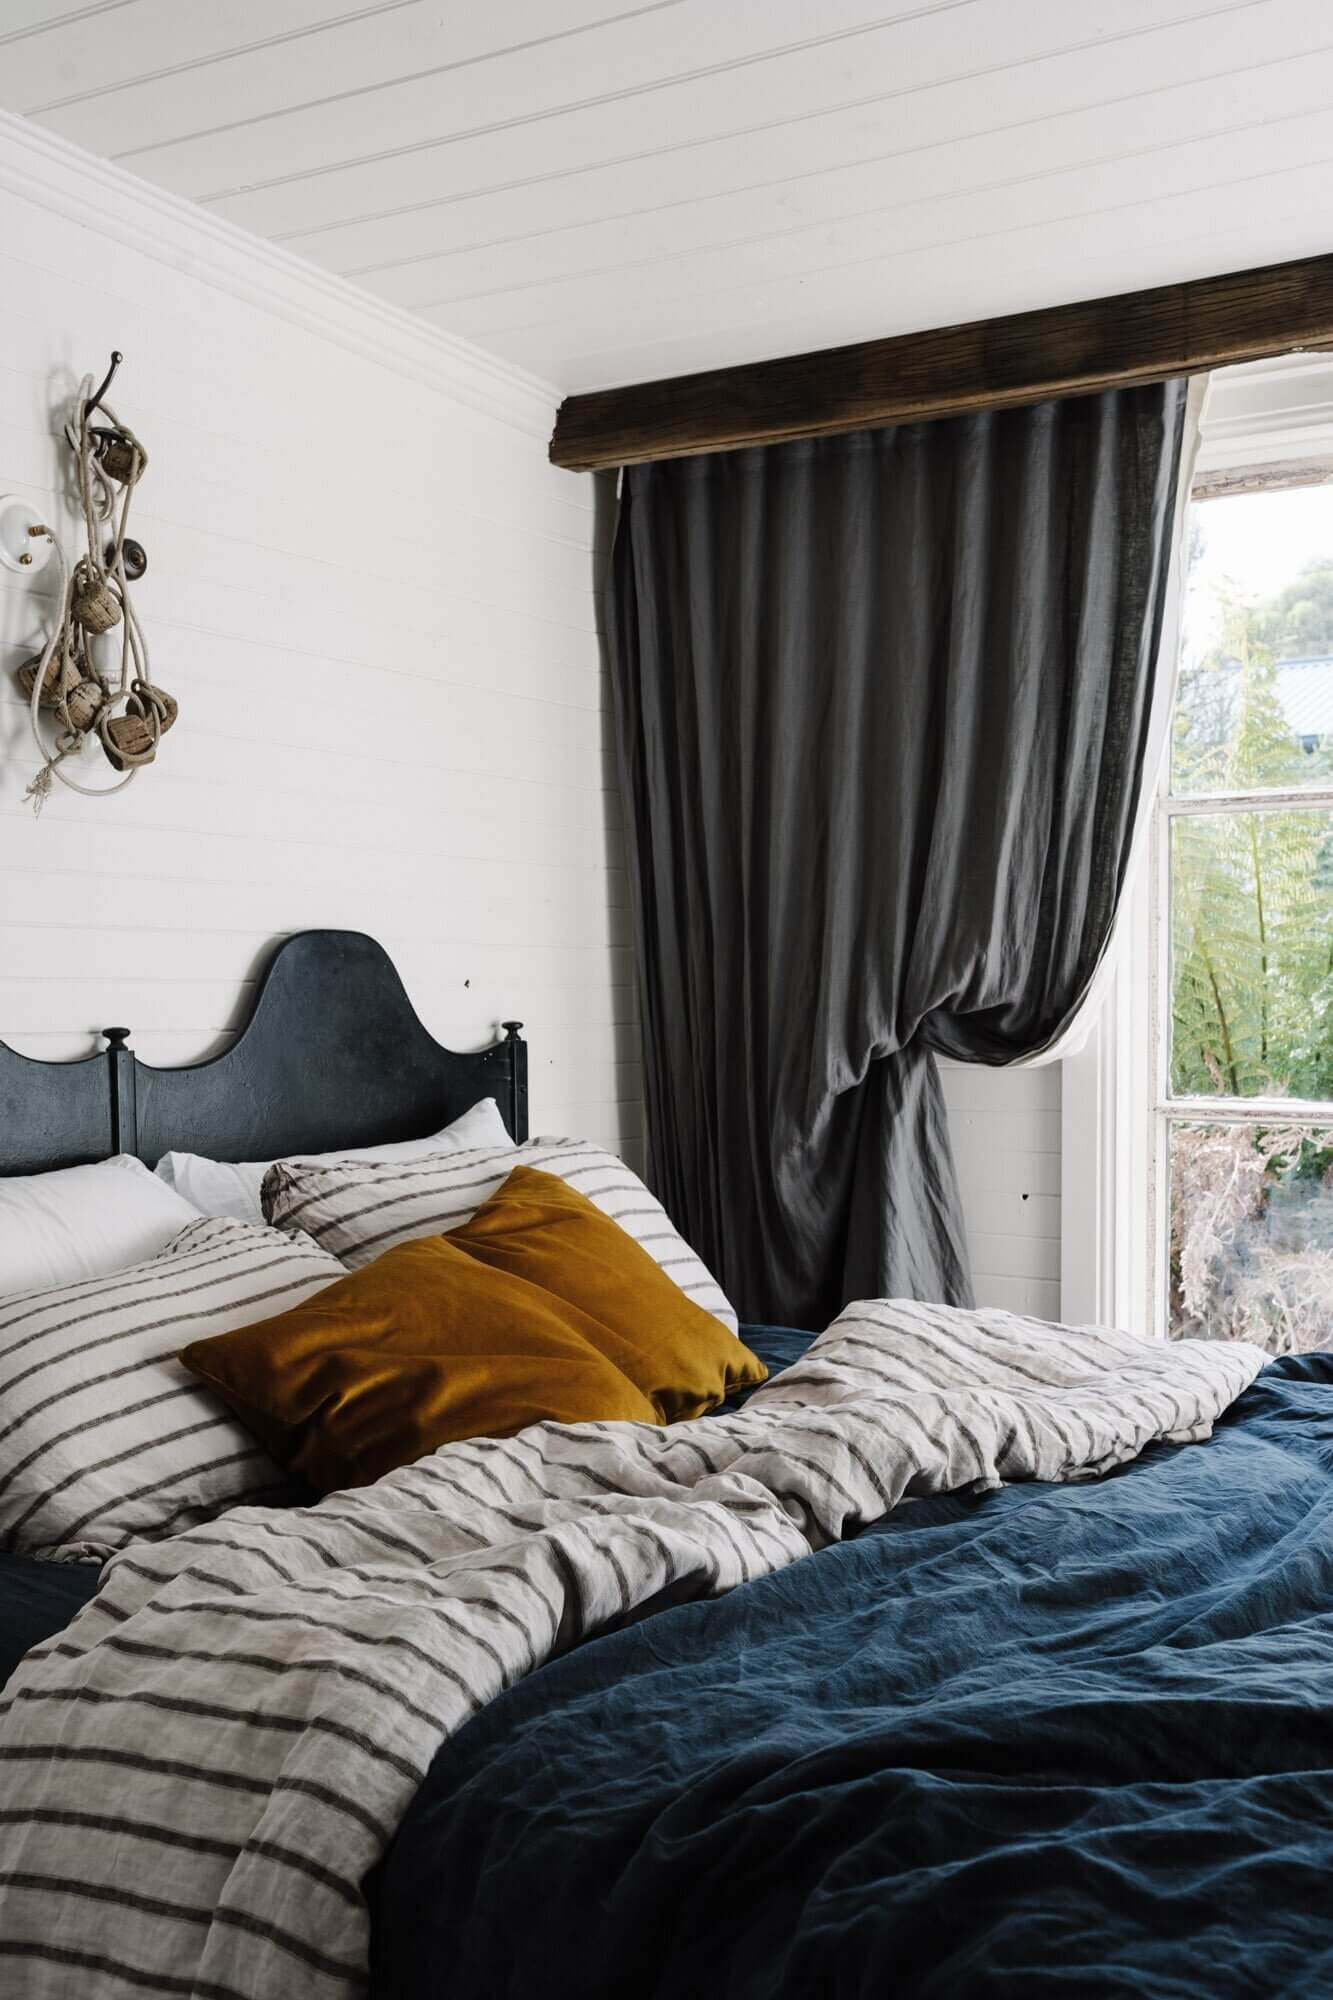 captains-rest-stylish-holiday-cottages-tasmania-the-nordroom